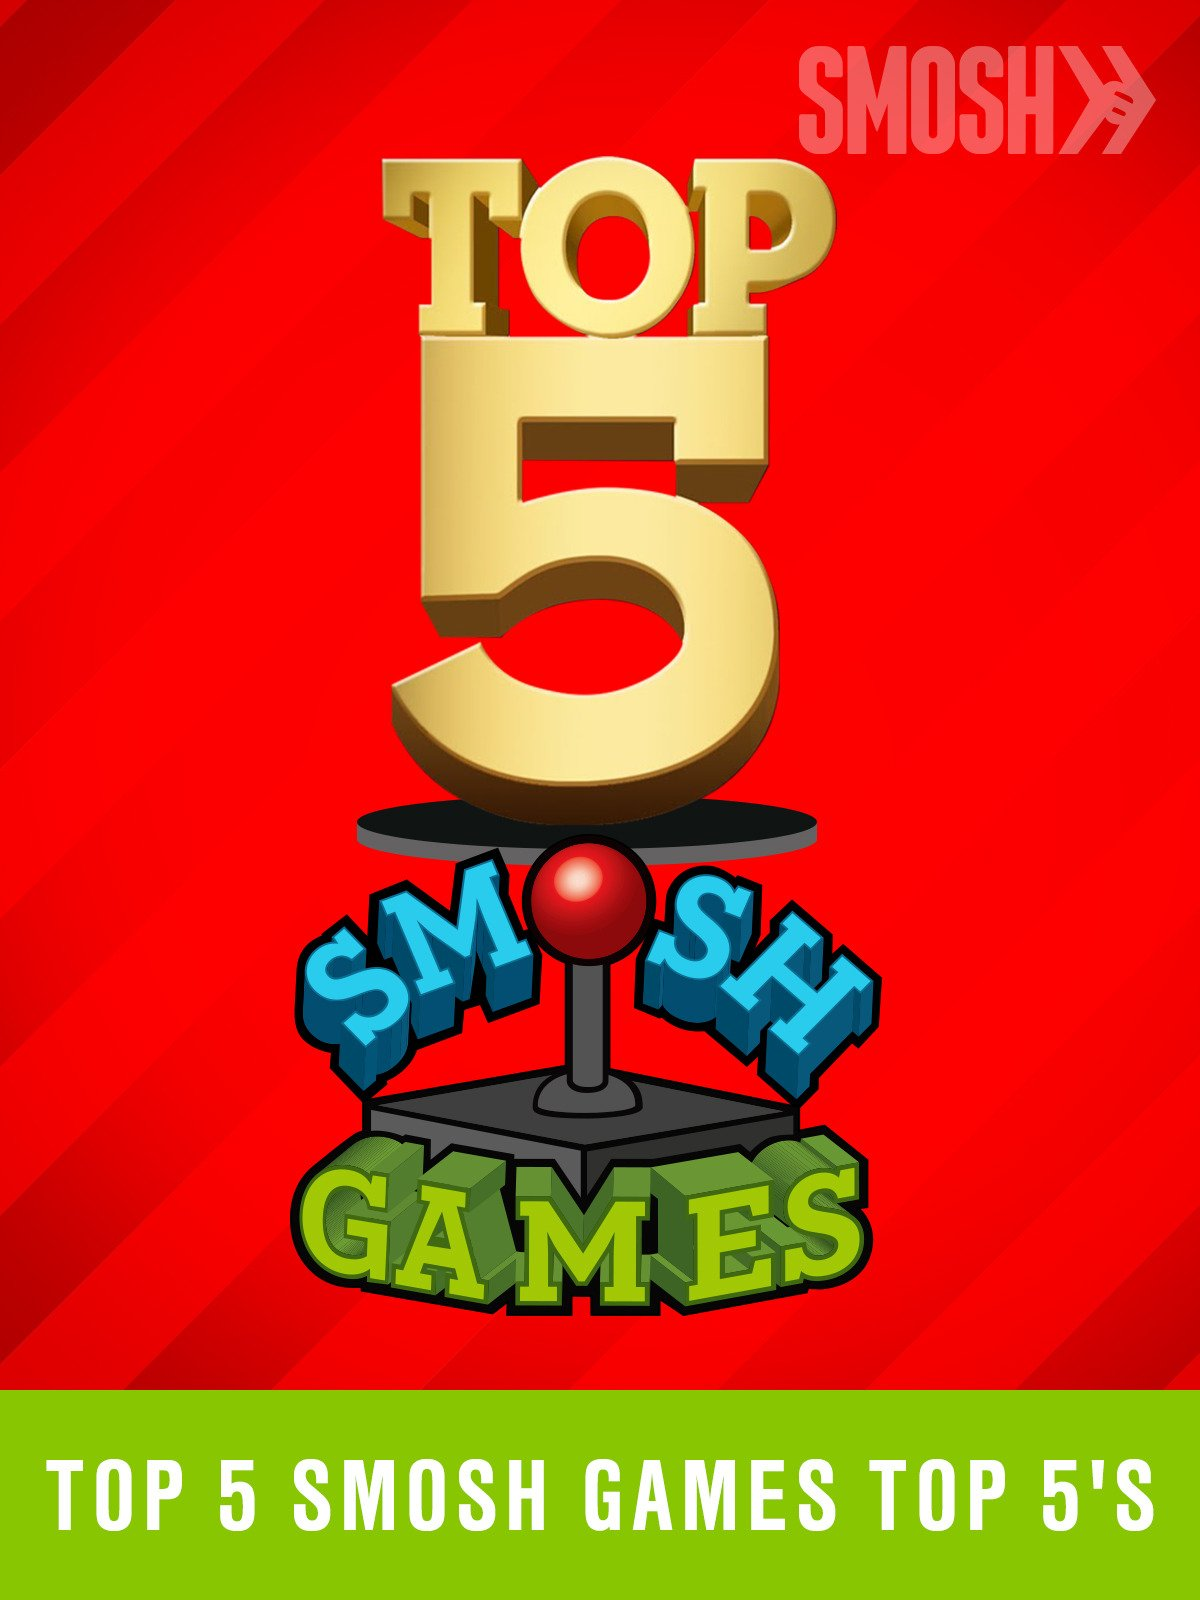 Clip: Top 5 Smosh Games Top 5's